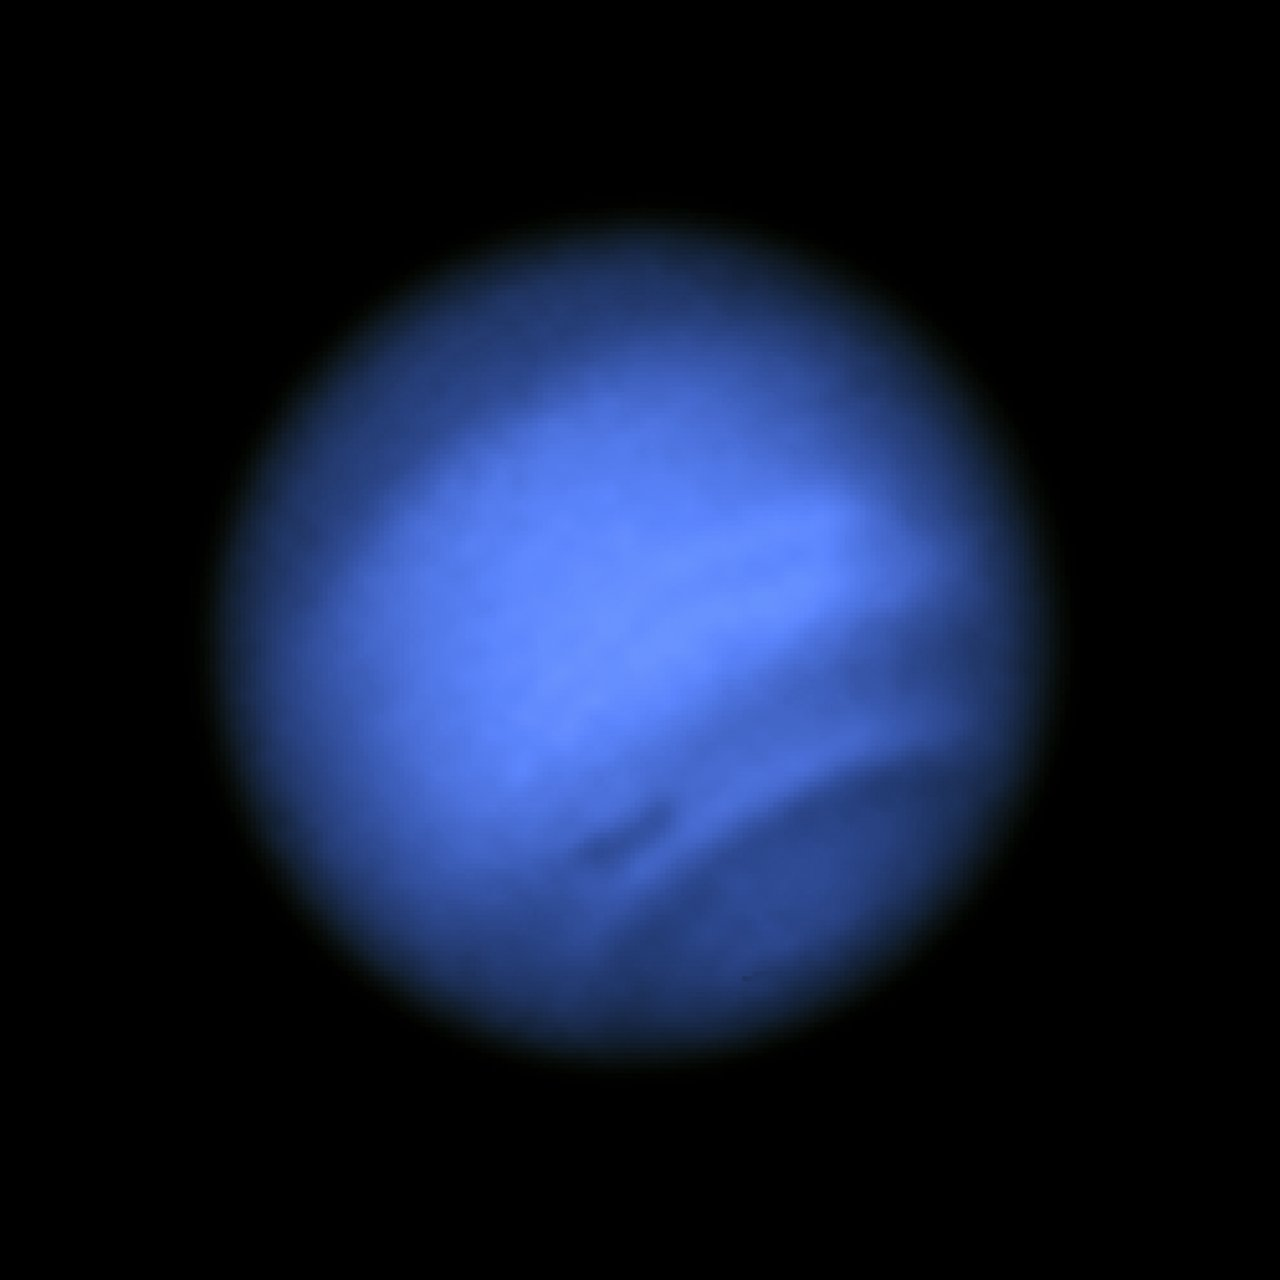 Image with dark spot (blue light)